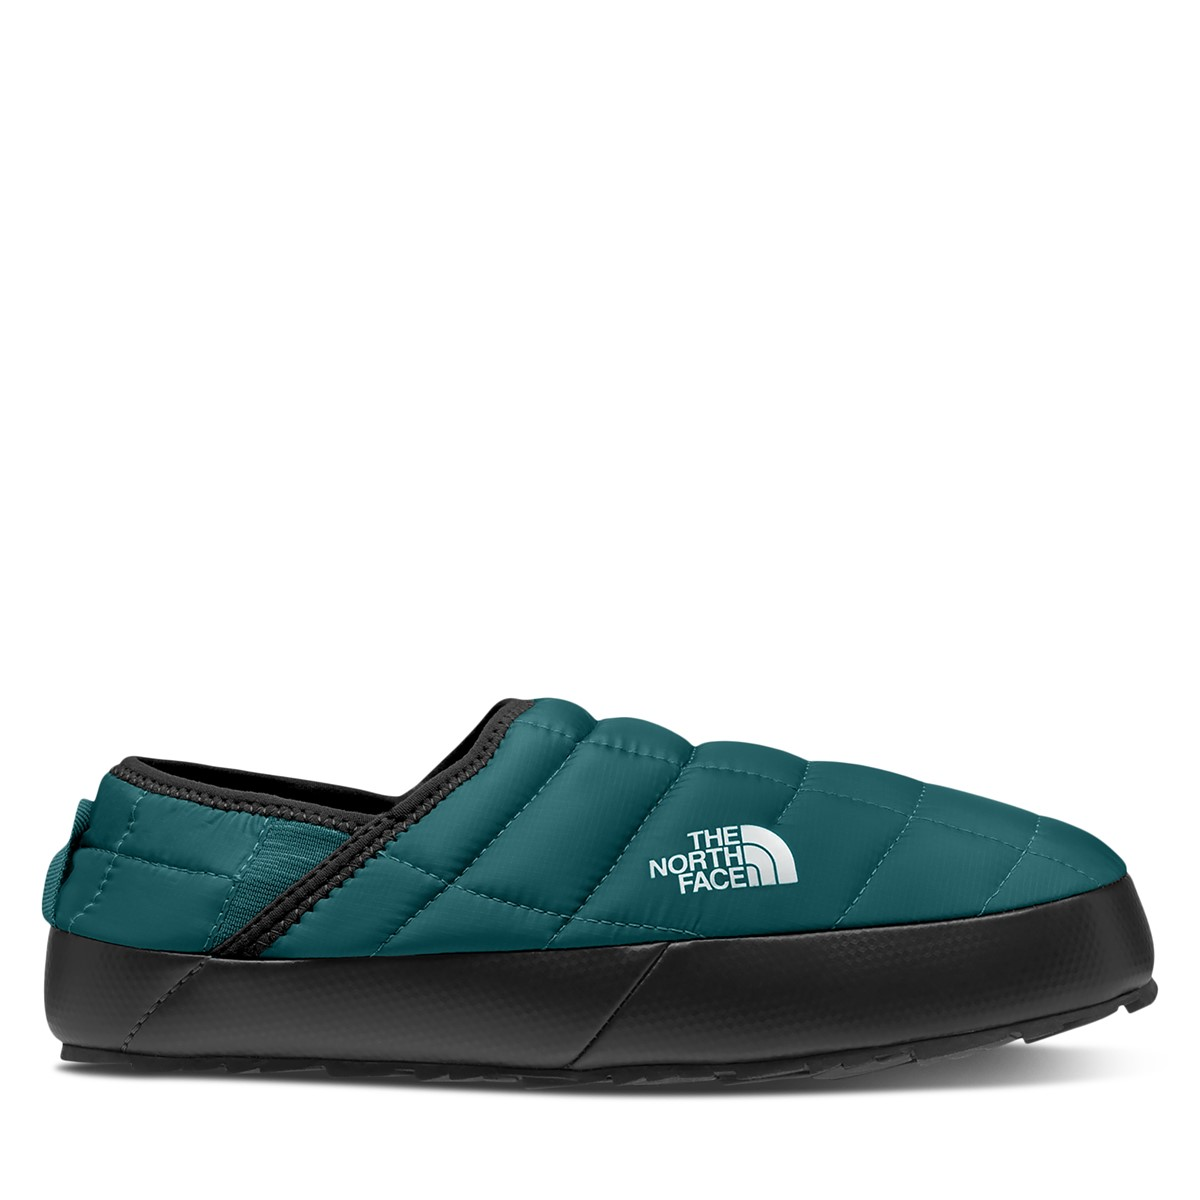 Women's Thermoball Traction Mules in Green